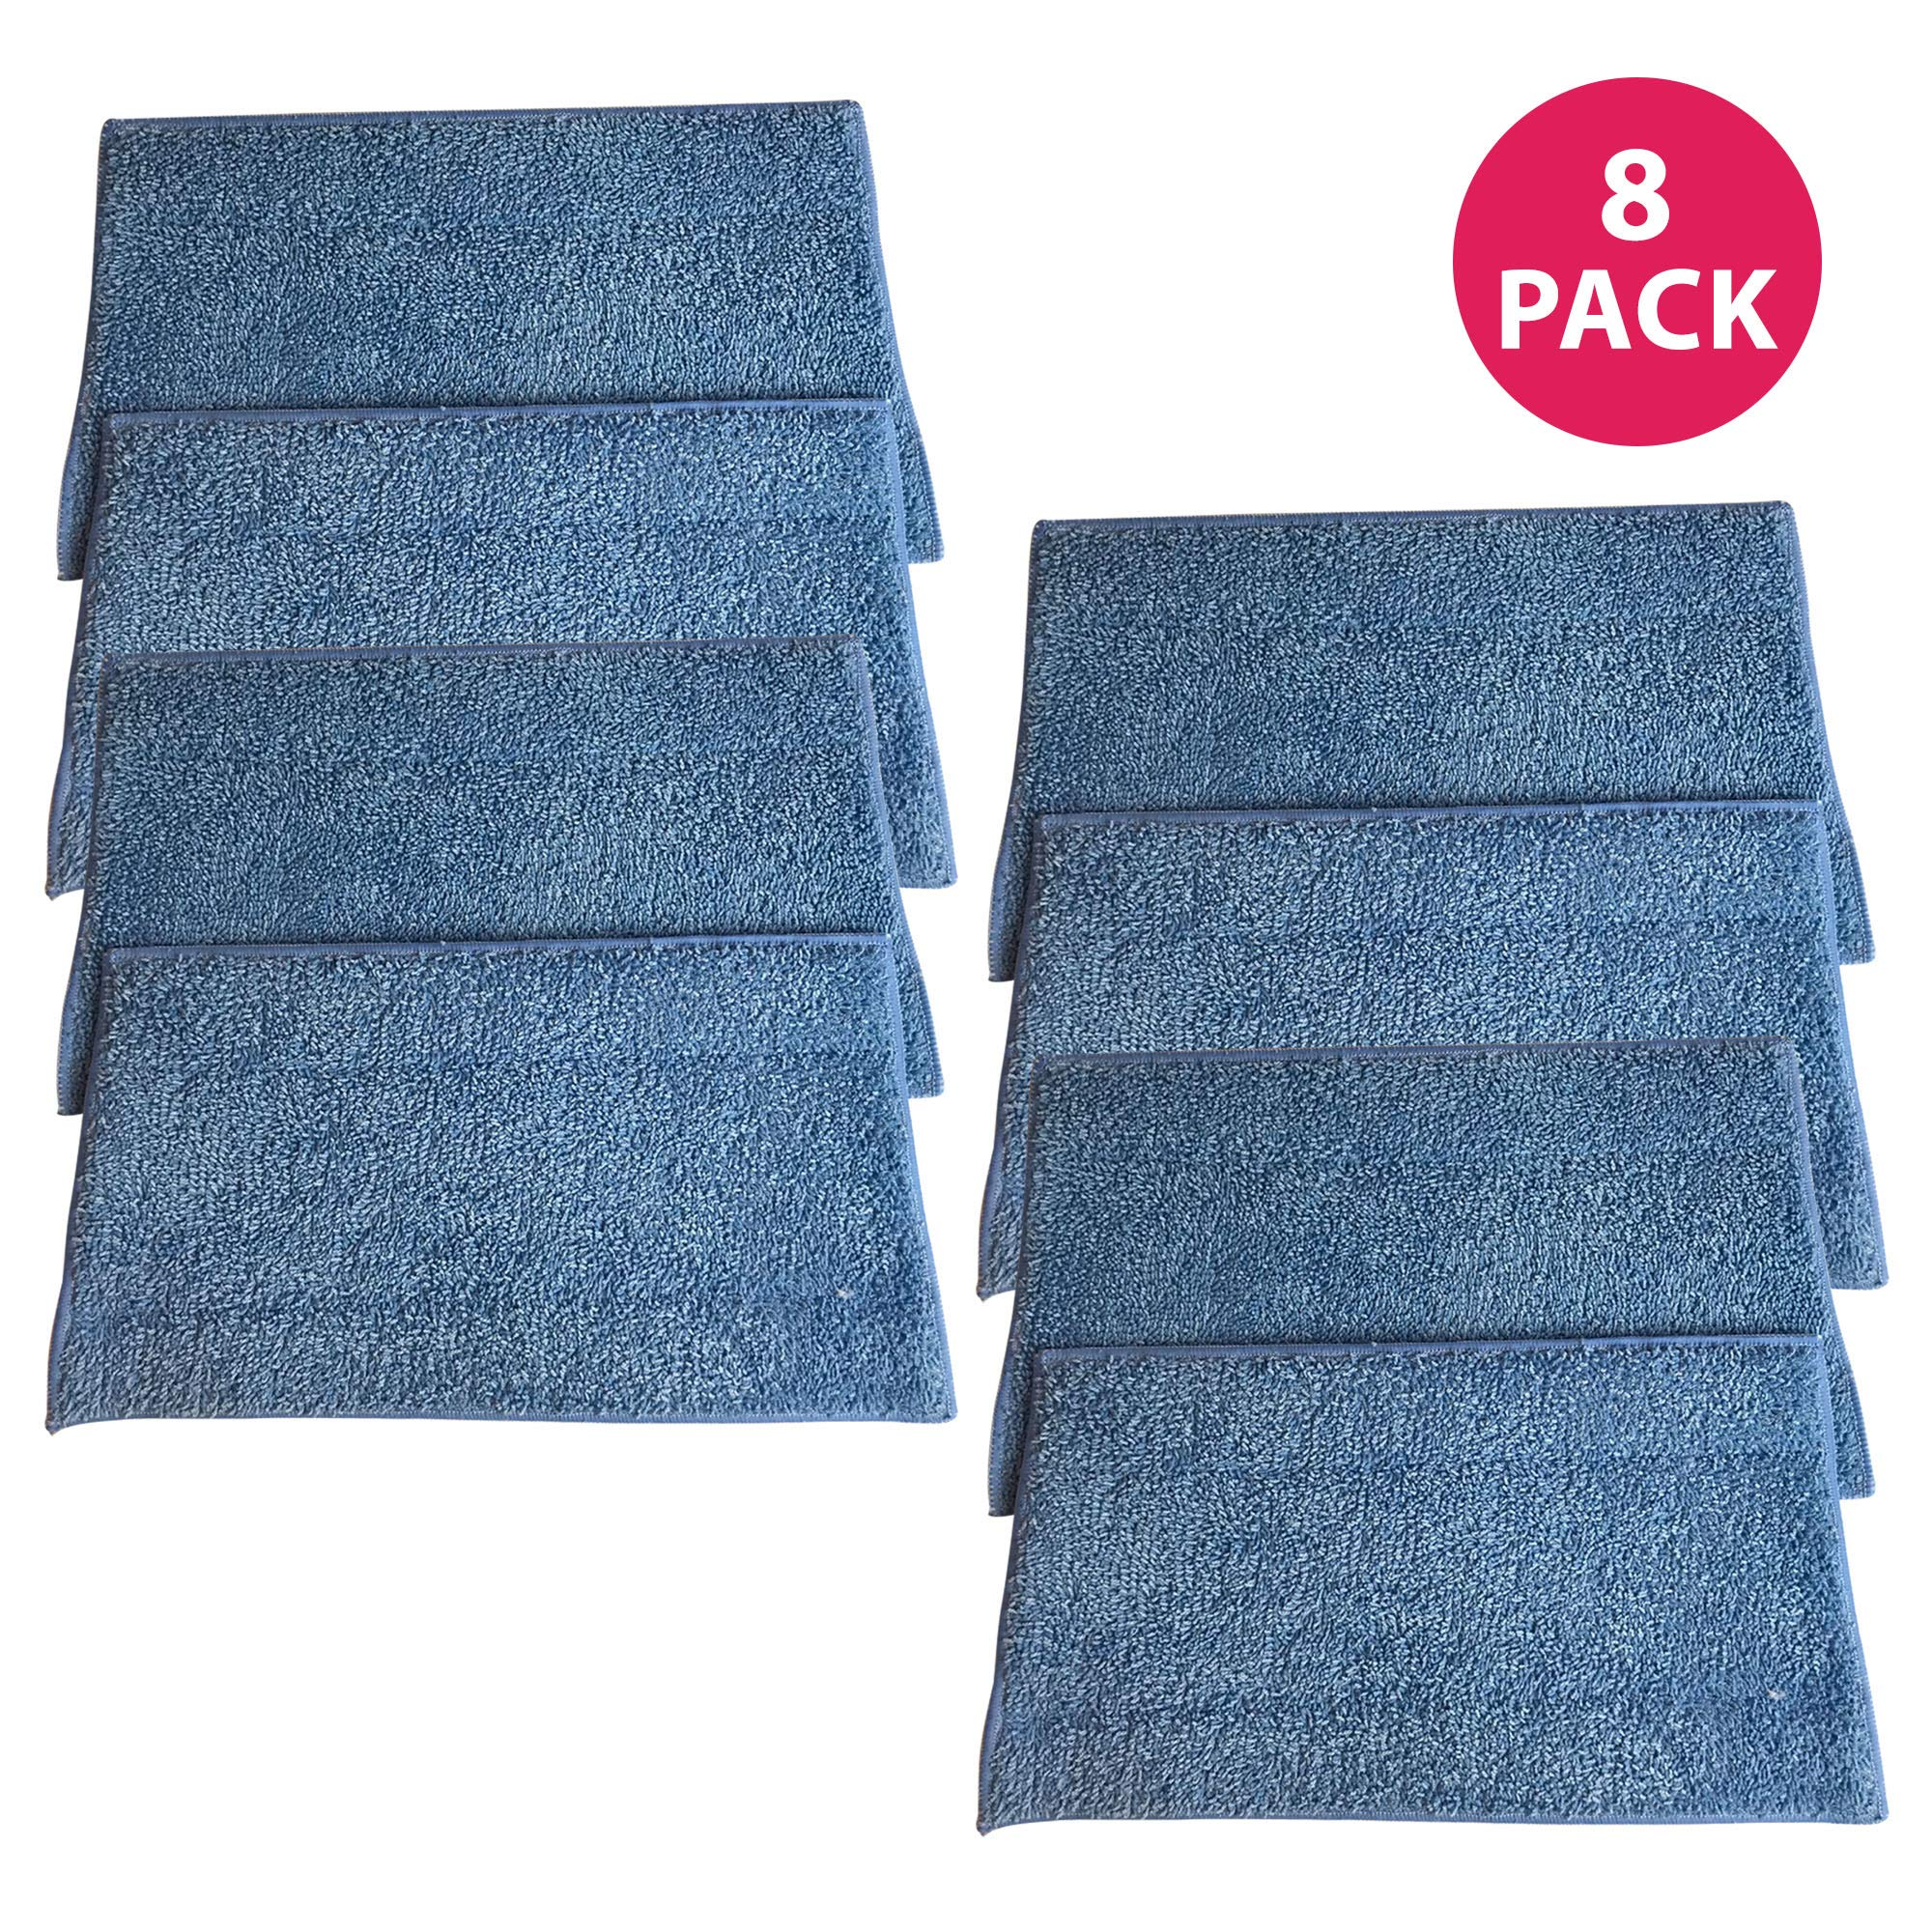 Crucial Vacuum Replacement Mop Pads - Compatible with Euroflex - Fits Euroflex EZ1 Monster Microfiber Steam Pads - Washable, Reusable Part, Models for Home, Office Universal Use - Easy Clean (8 Pack) by Crucial Vacuum